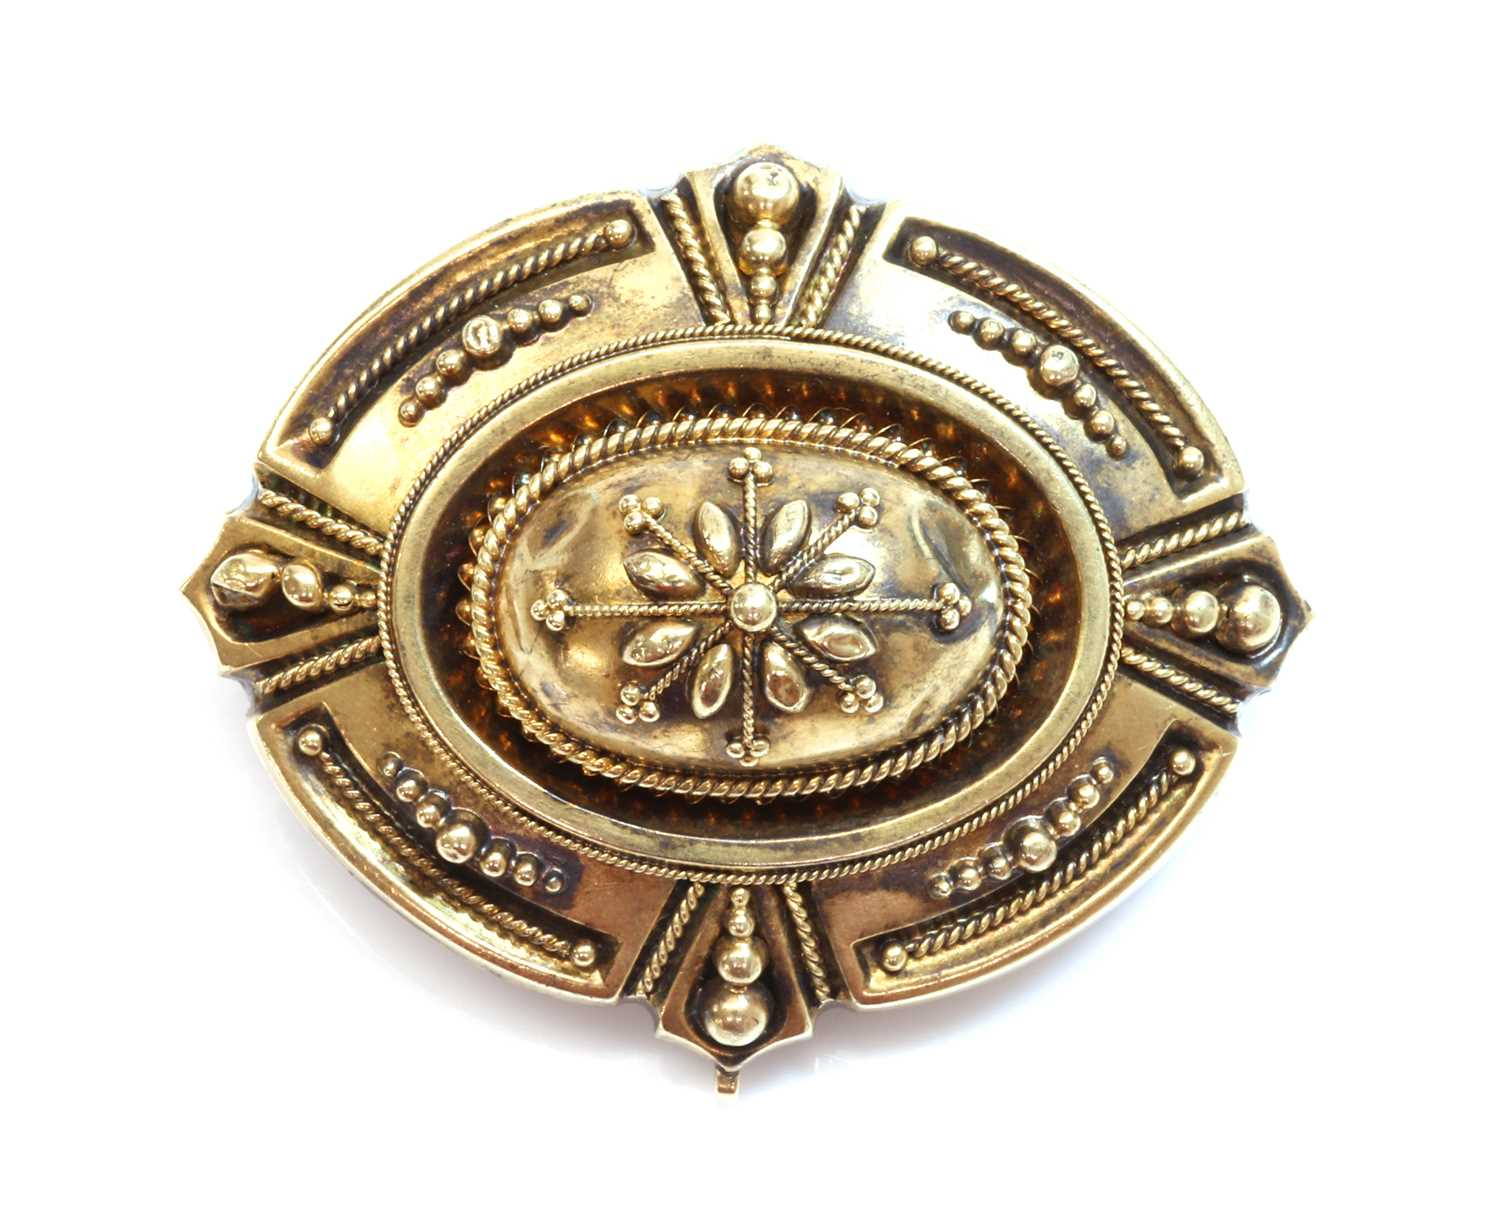 Lot 85 - A Victorian archaeological revival Etruscan style shield form brooch, c.1870